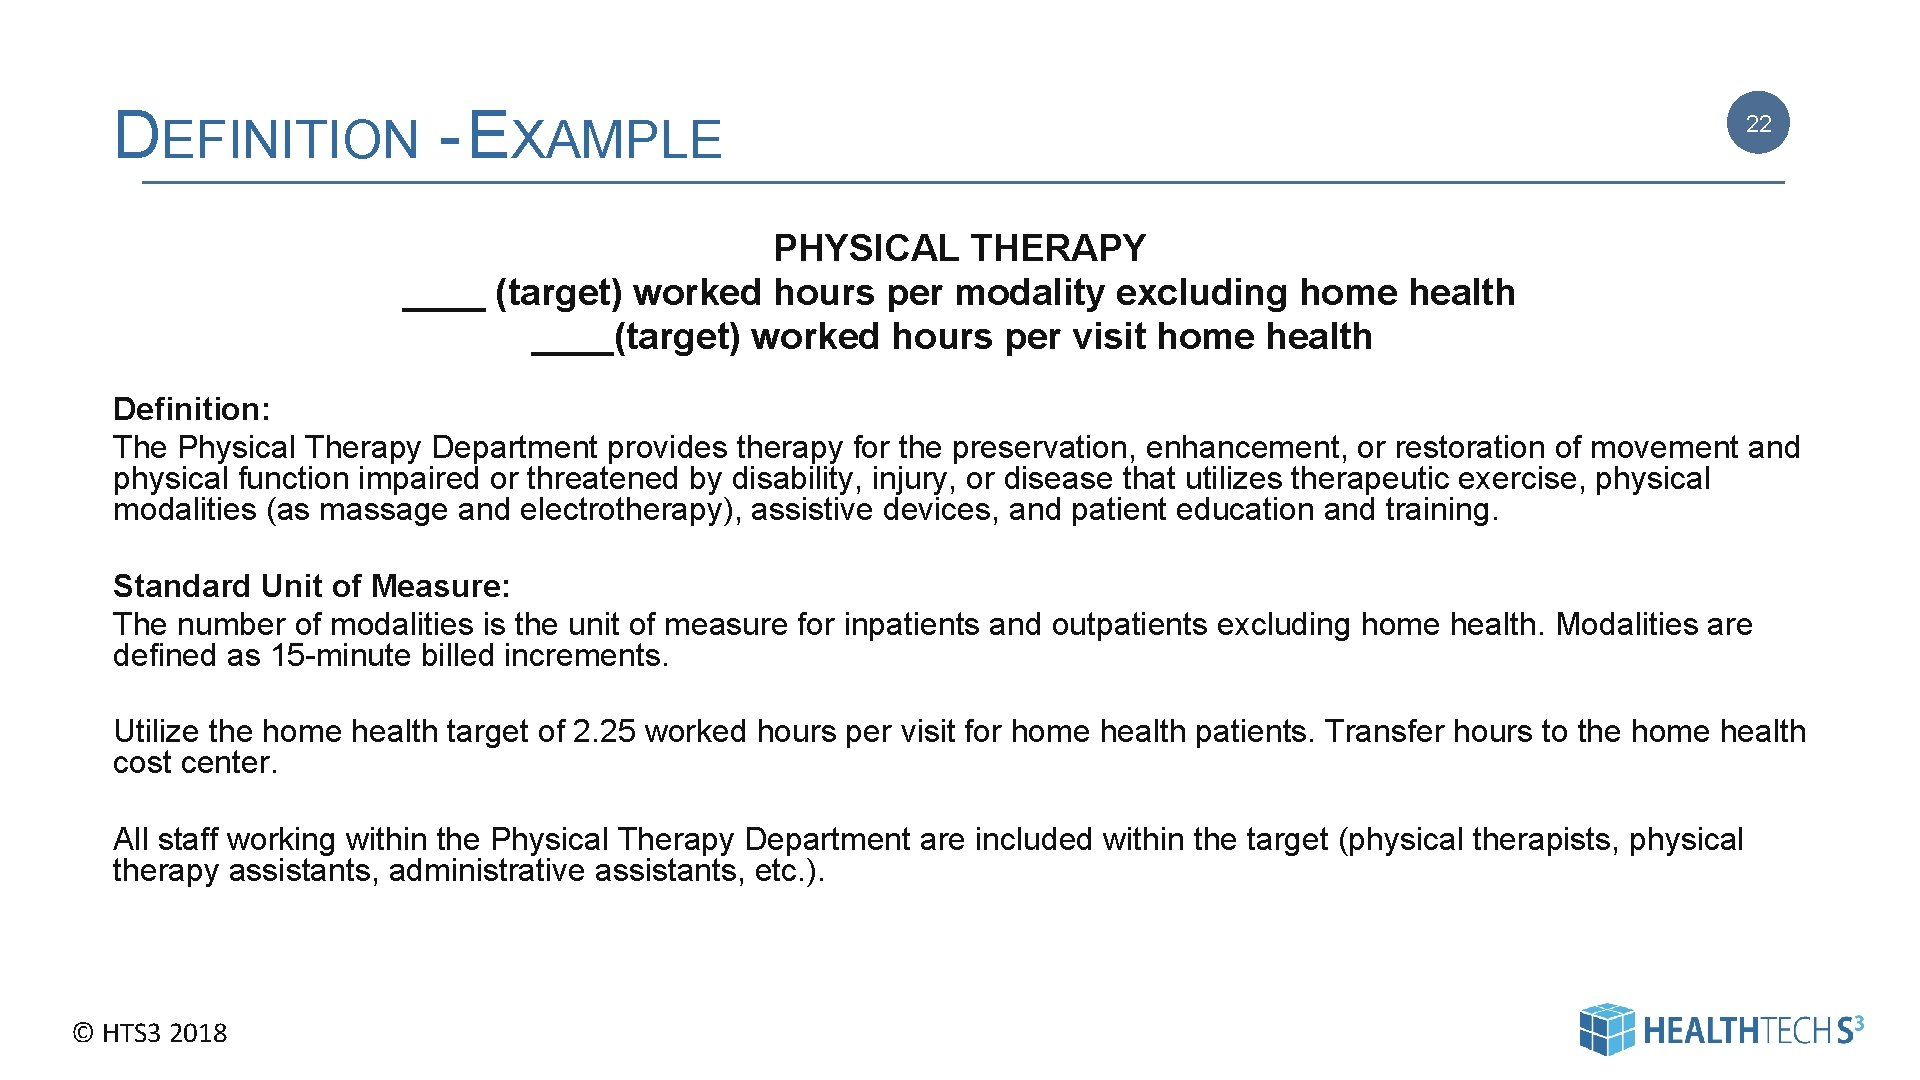 DEFINITION - EXAMPLE 22 PHYSICAL THERAPY ____ (target) worked hours per modality excluding home